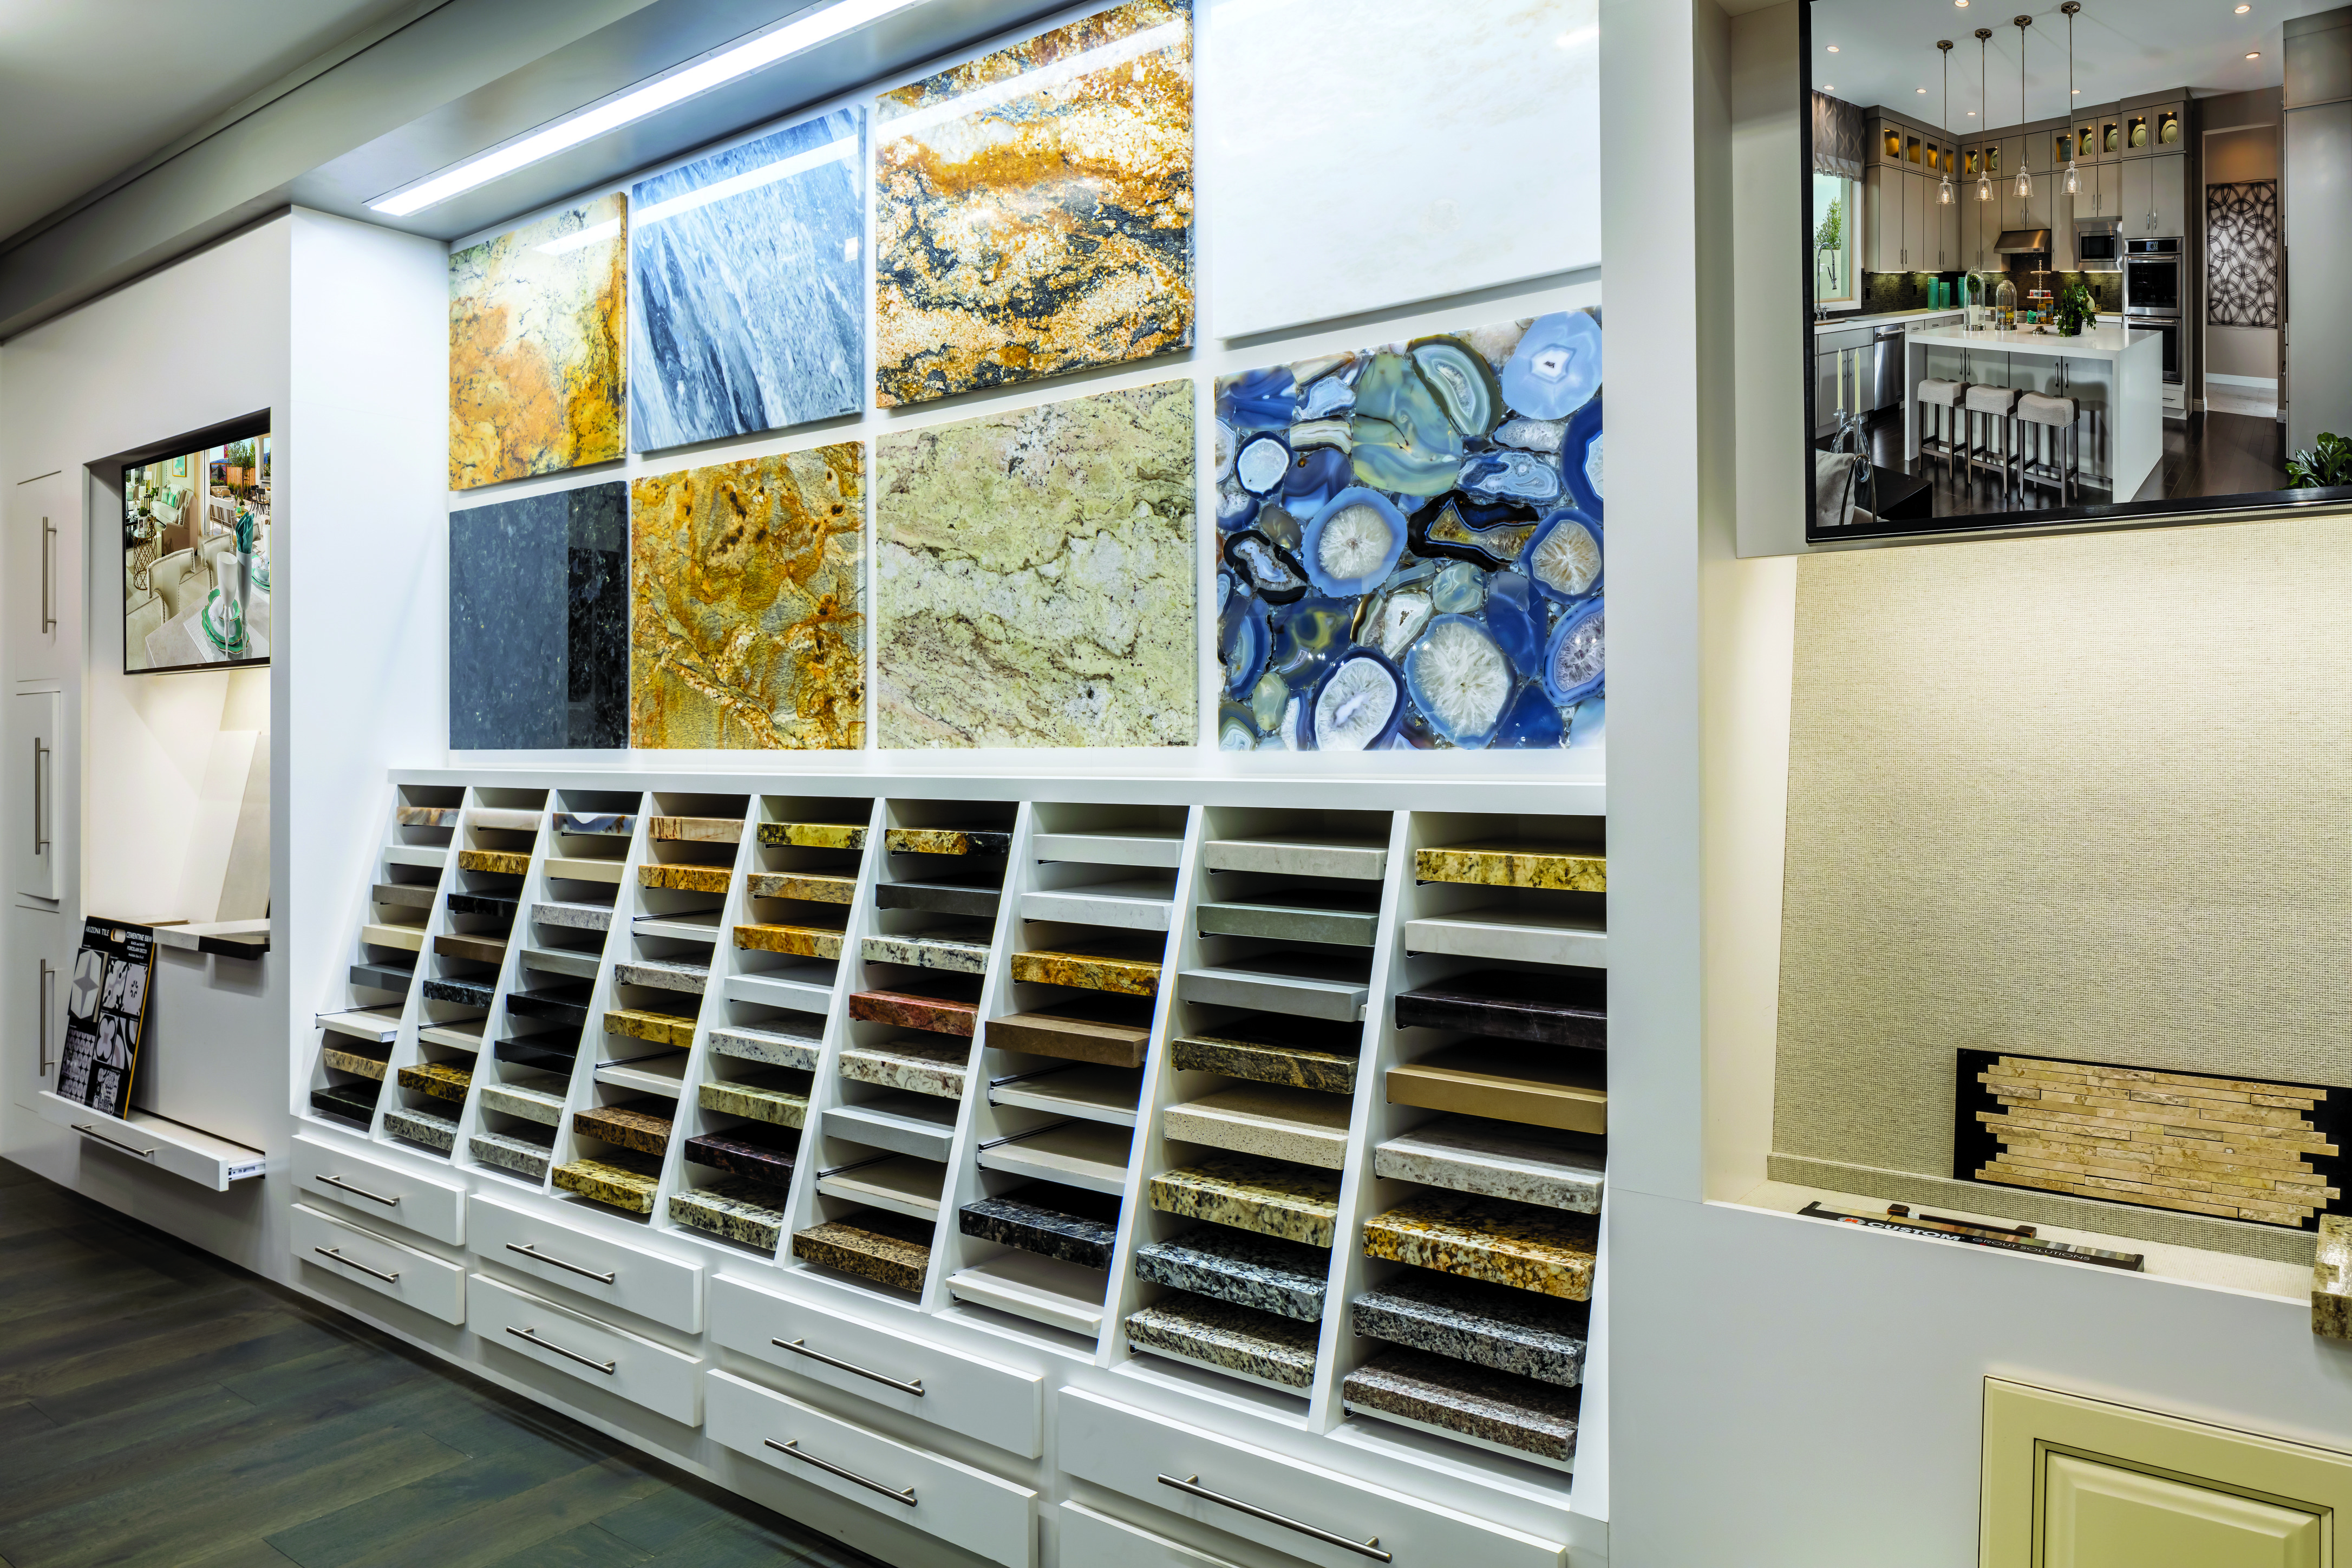 Countertop selection in a home design studio.